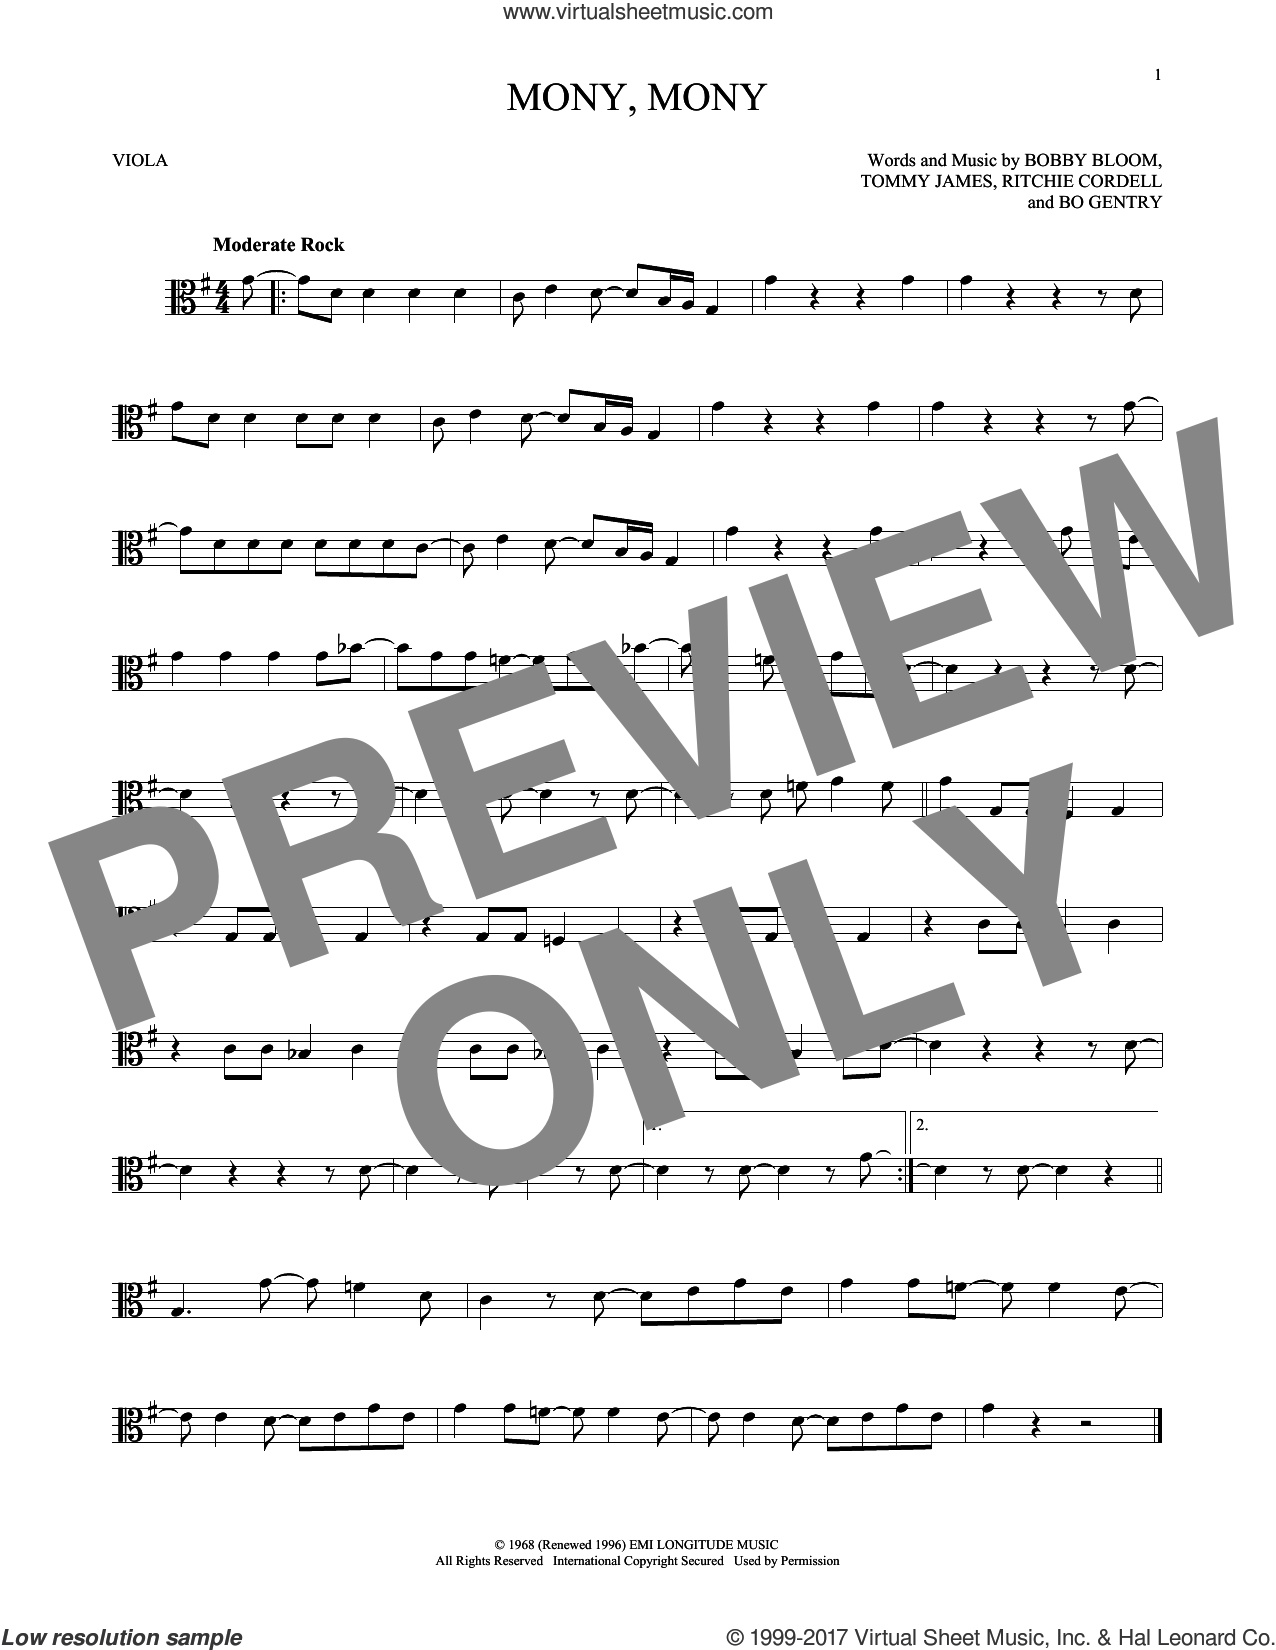 Mony, Mony sheet music for viola solo by Tommy James & The Shondells, Bo Gentry, Bobby Bloom and Ritchie Cordell, intermediate skill level